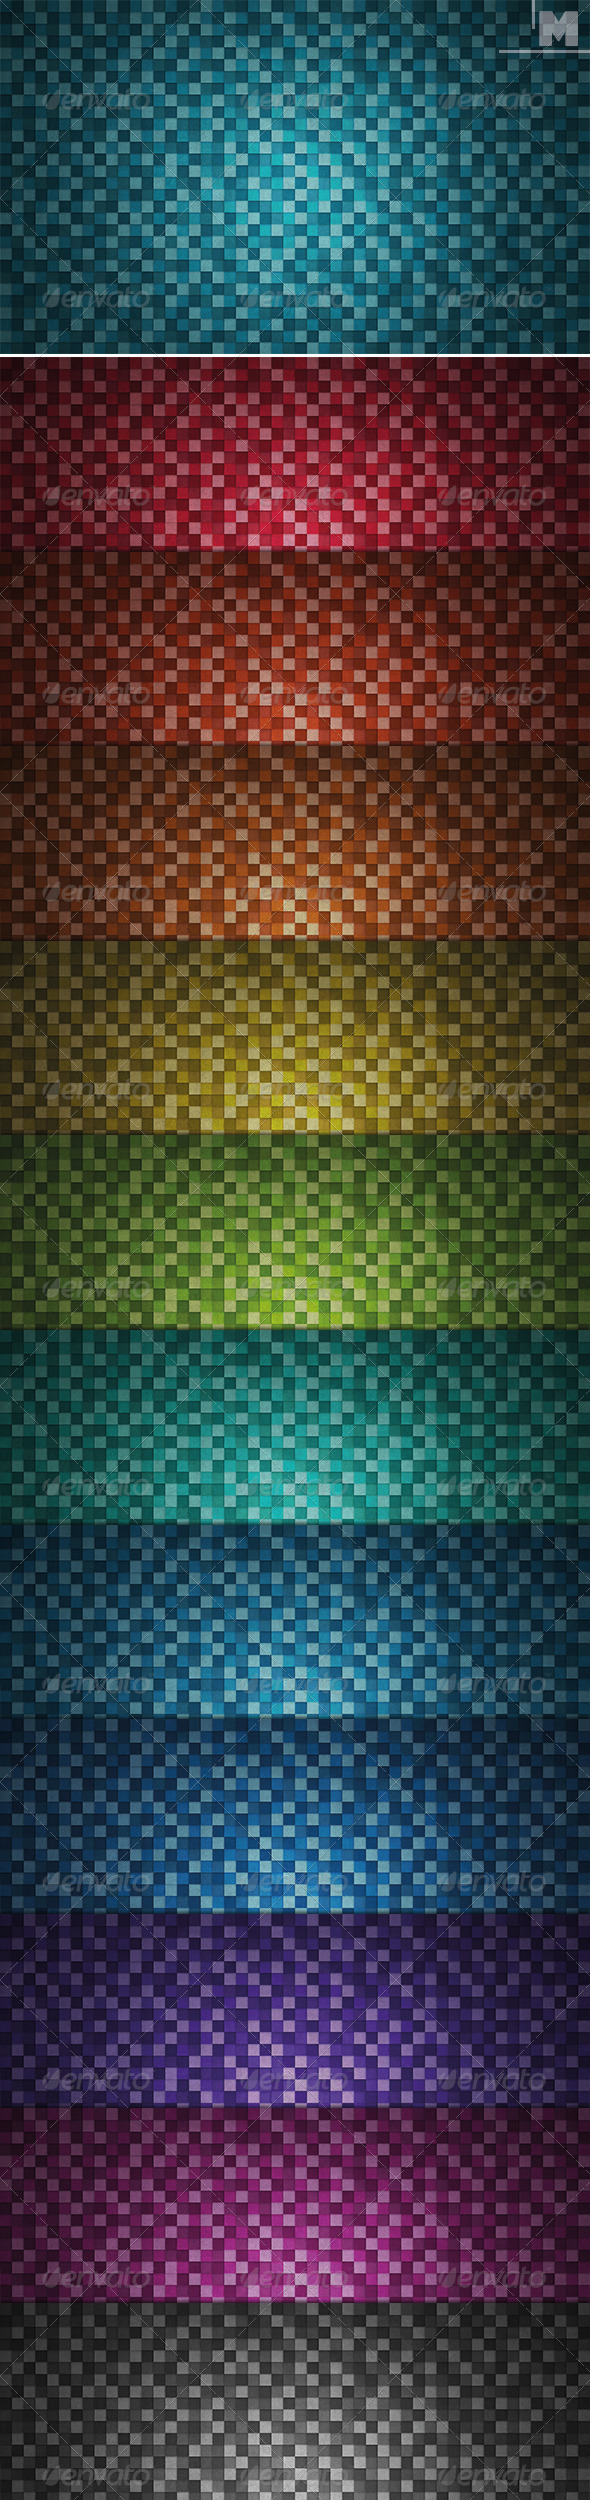 GraphicRiver Mosaic Backgrounds 7883675